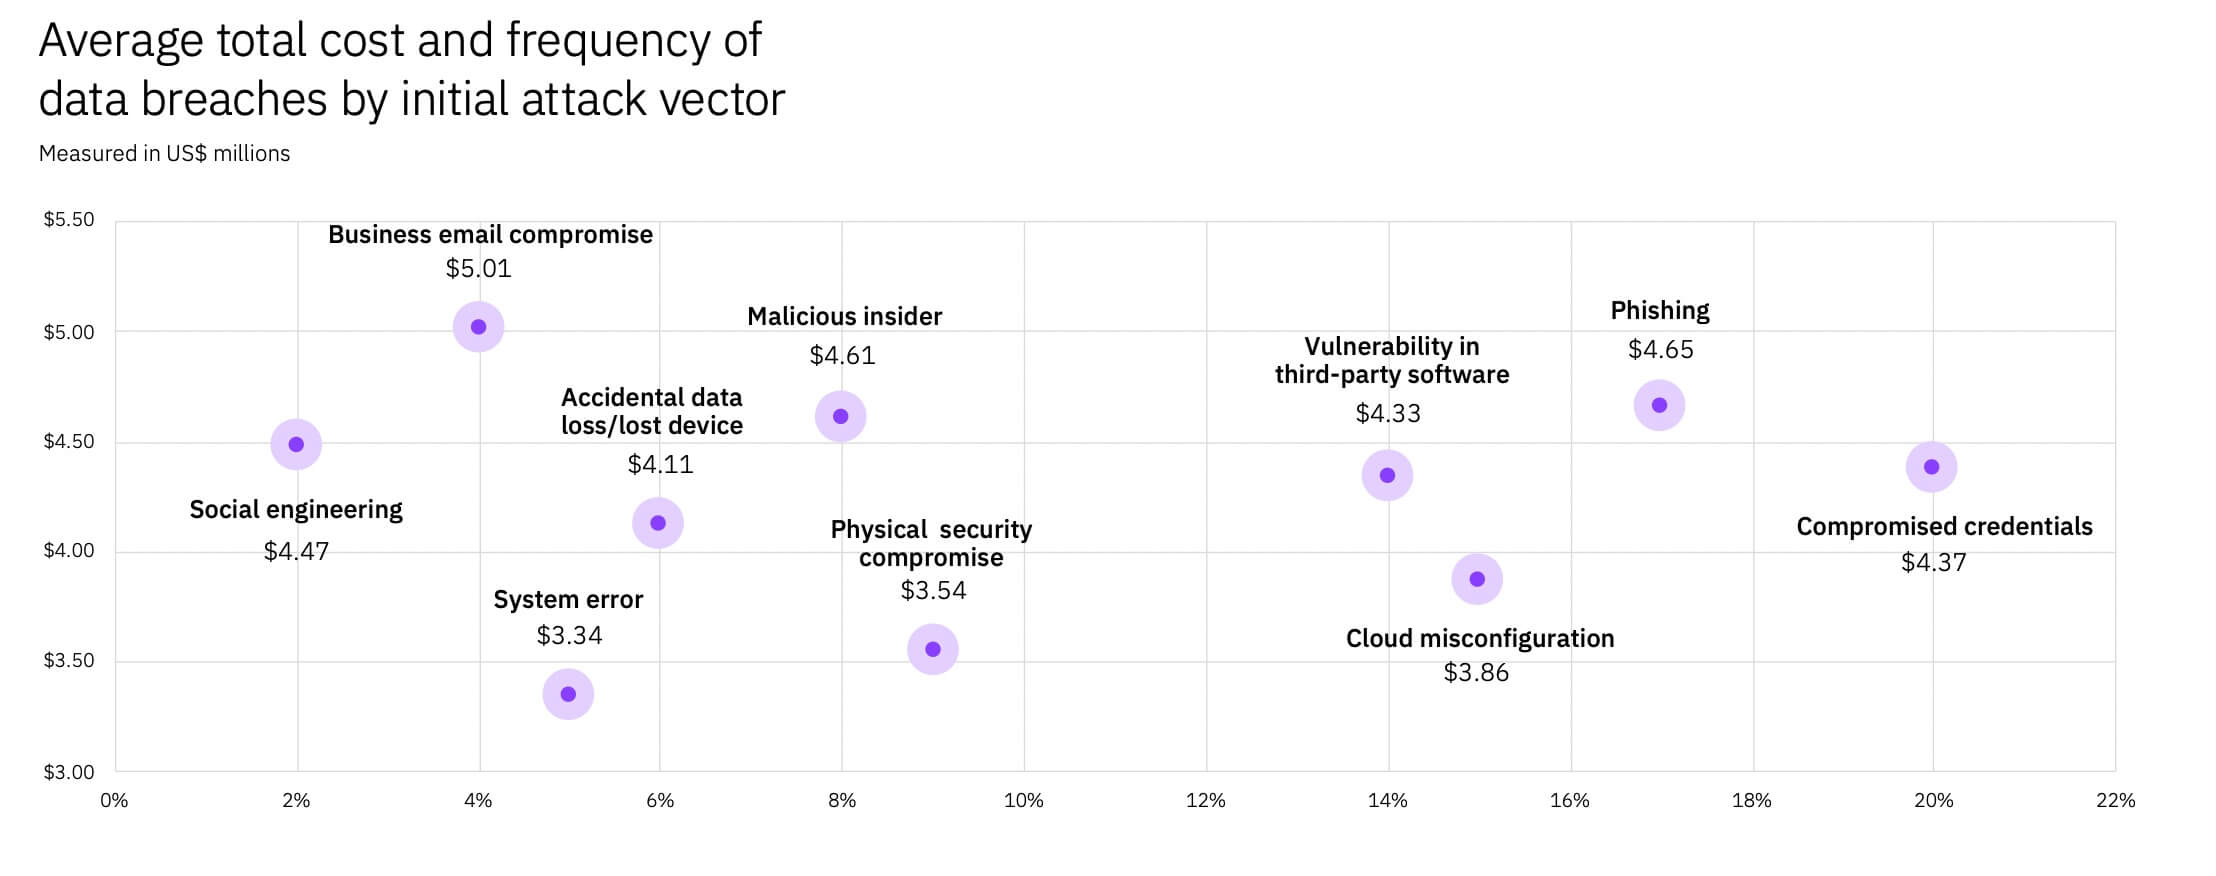 average total cost and frequency of data breaches by initial attack vector